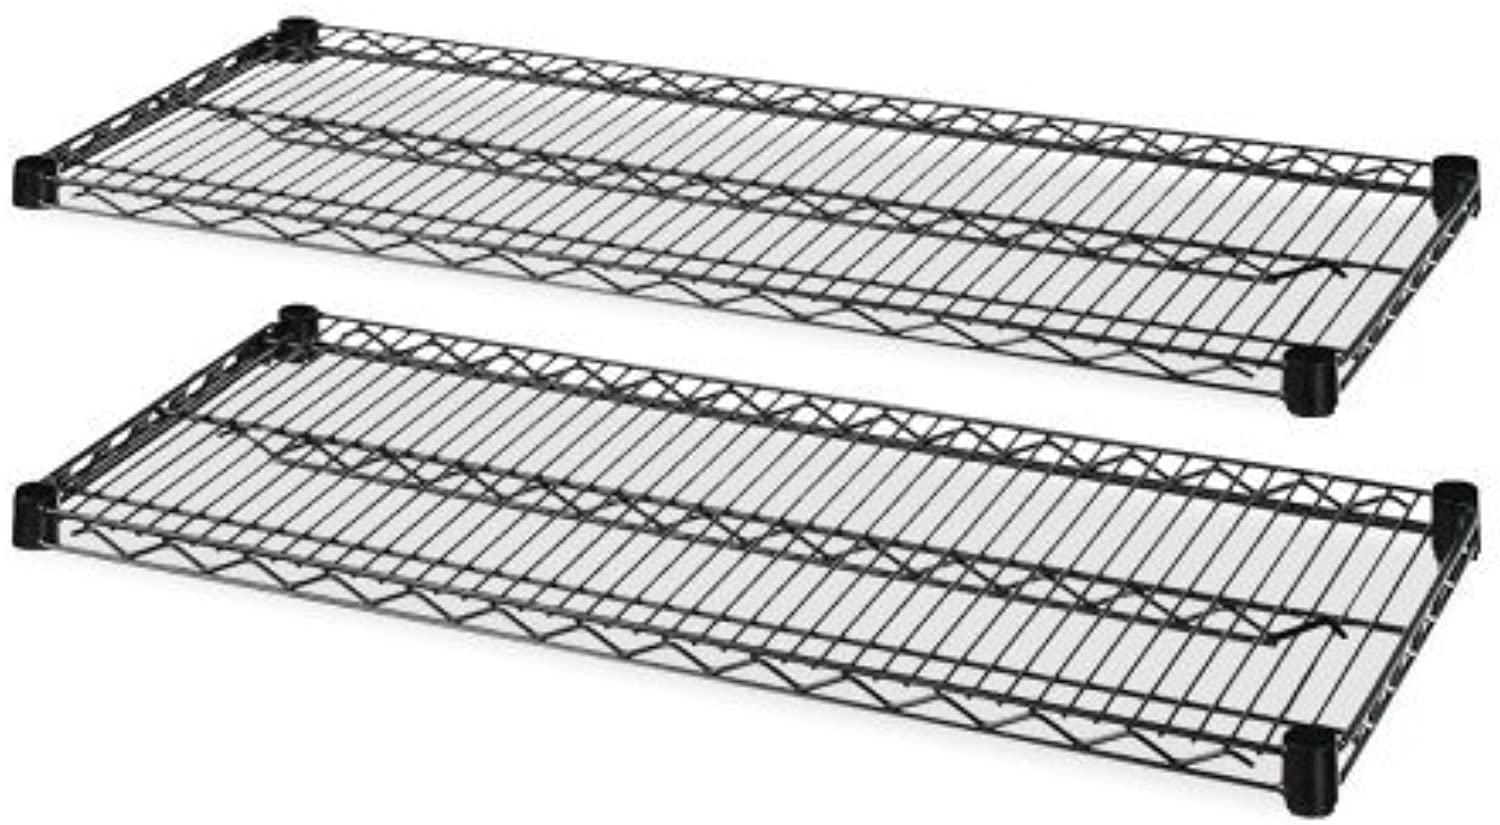 Lorell 2-Extra Shelves for Wire Shelving, 48 by 18 by 72-Inch, Black 2 box